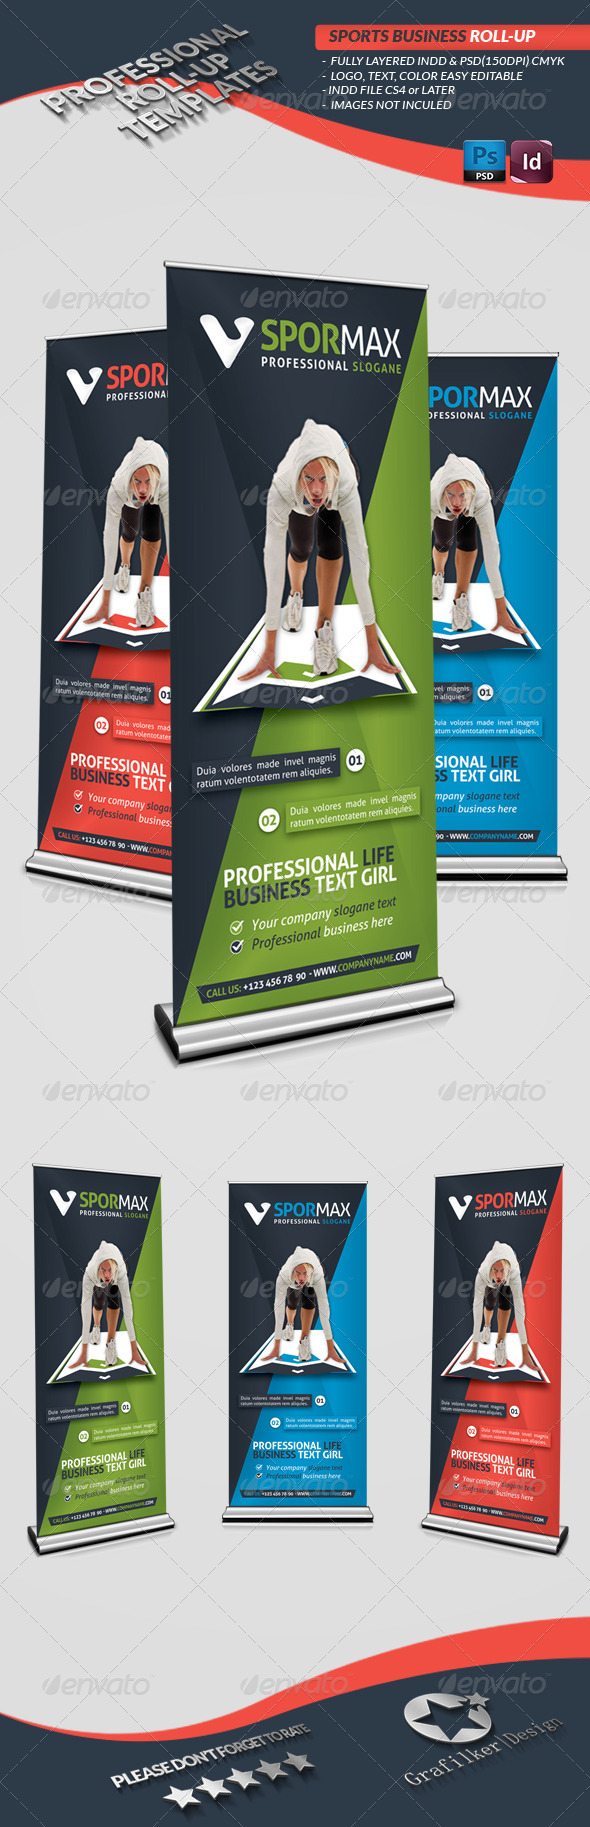 Sports Roll-Up Templates